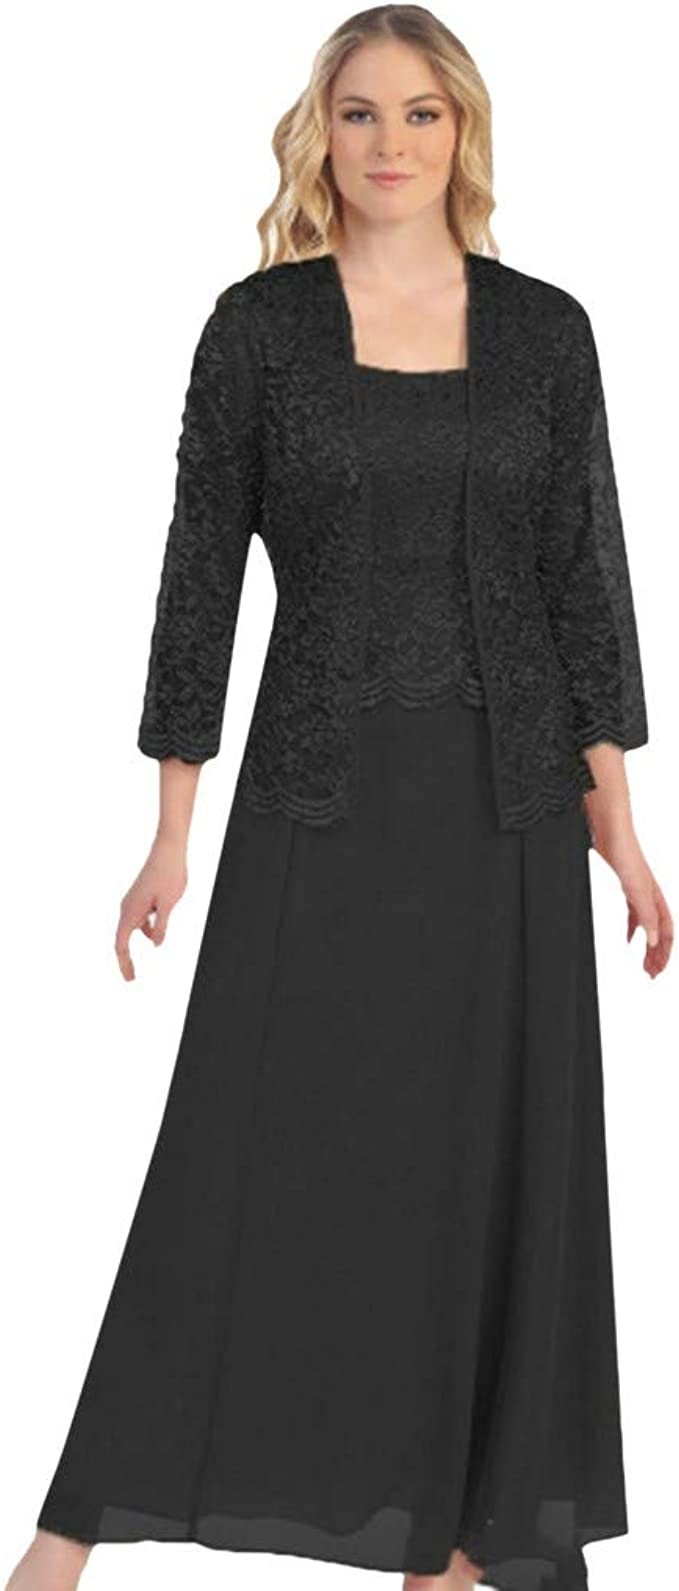 Womens Solid Color Long Sleeve Party Dress